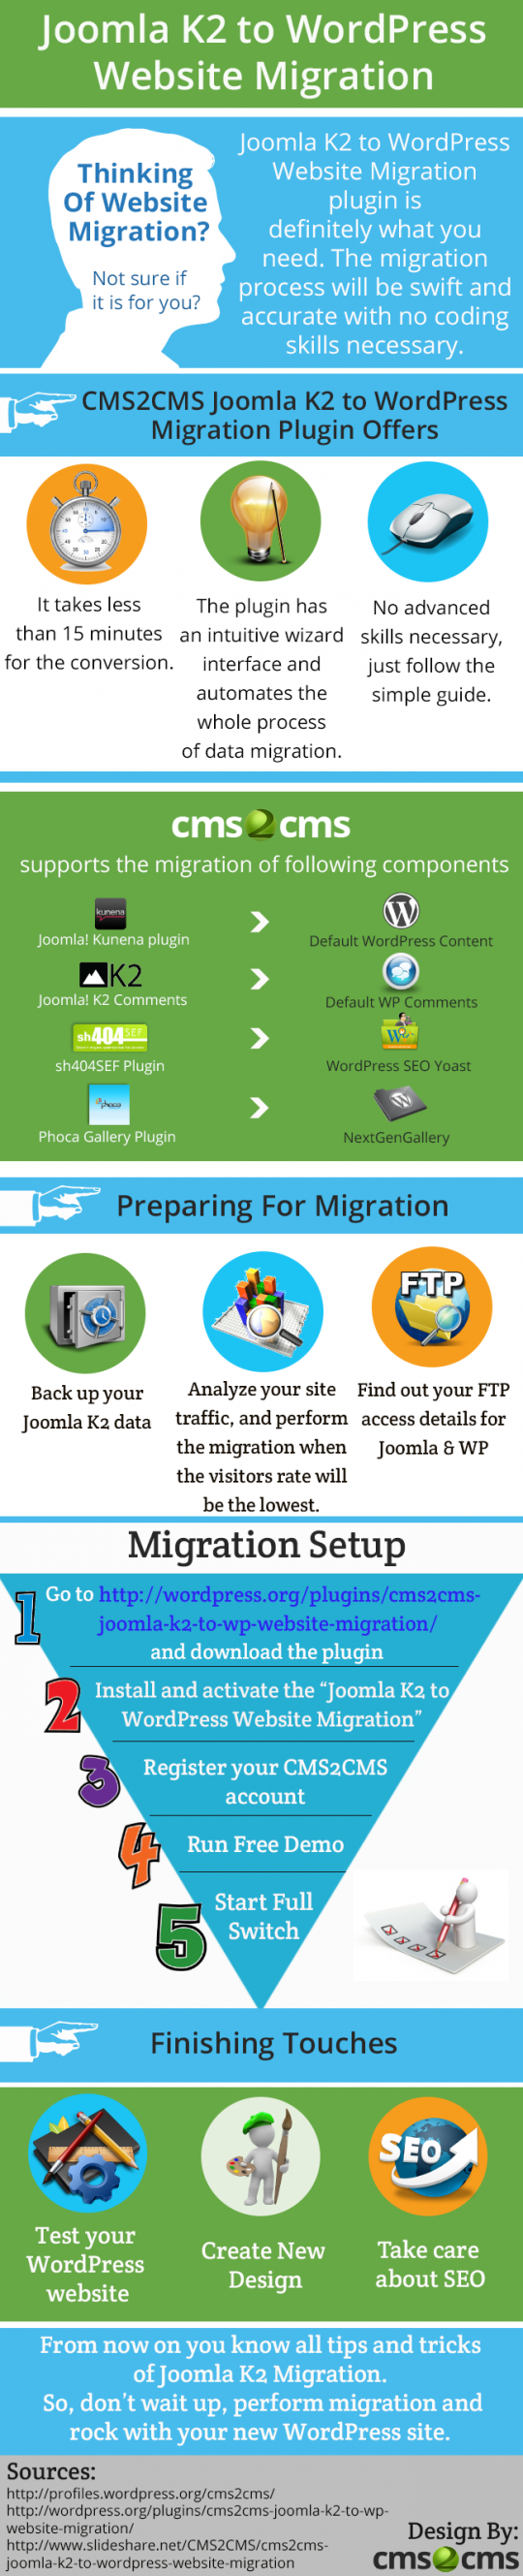 Joomla K2 to WordPress Website Migration Plugin